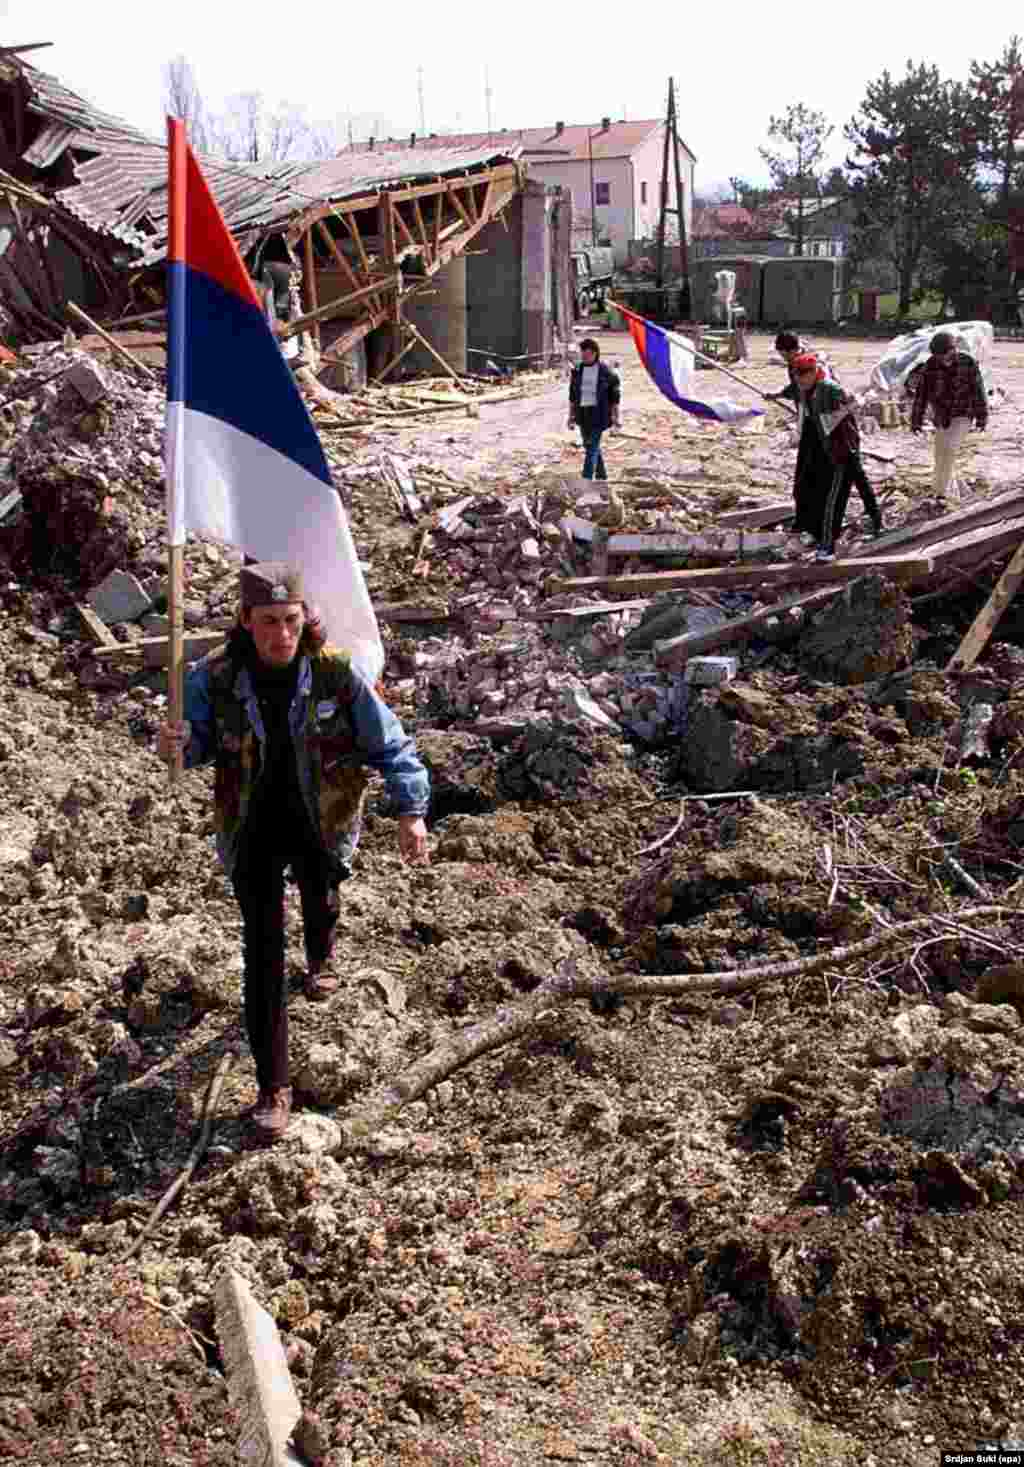 Men carrying Serbian flags and wearing traditional caps walk through the rubble left after NATO jets bombed a Yugoslav Army base in Kragujevac in 1999.